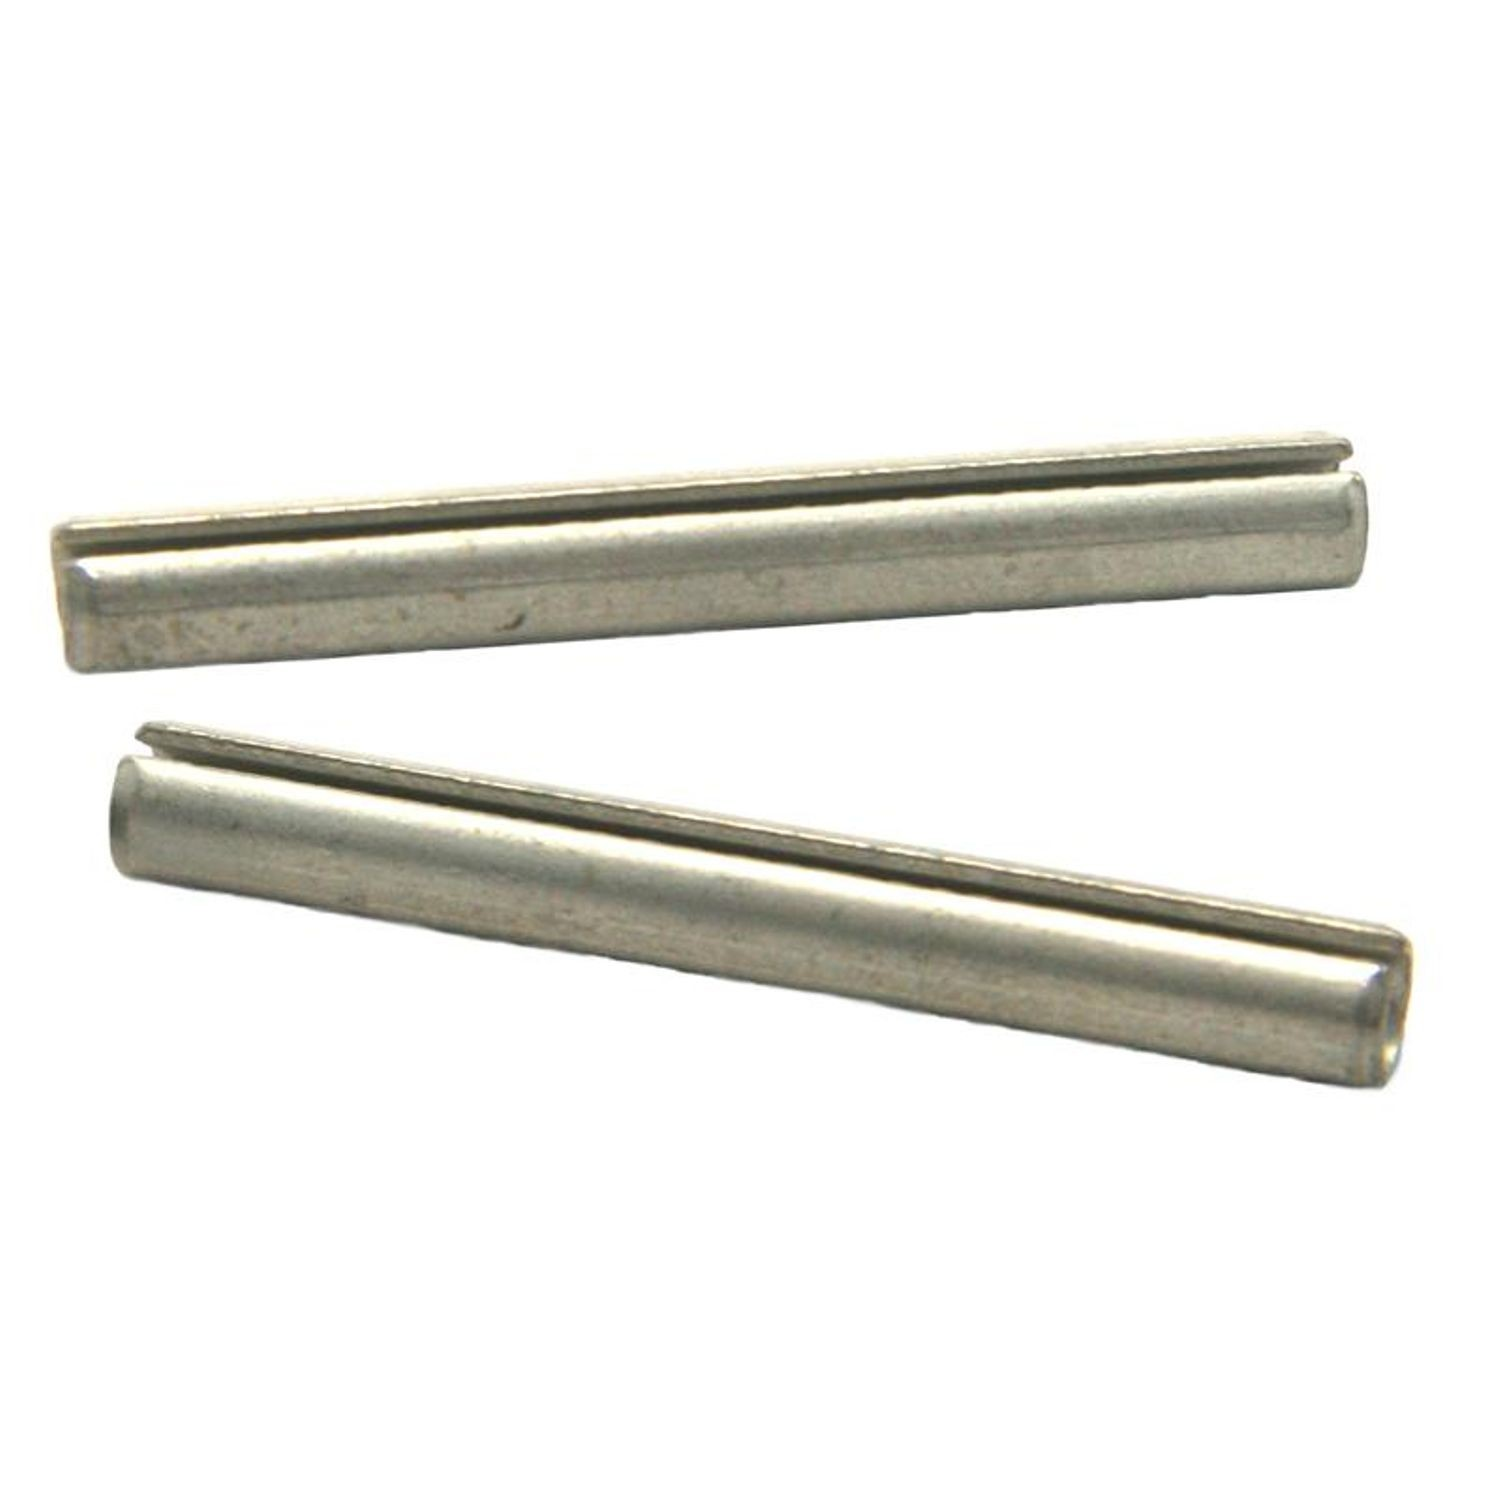 7//32 X 1-1//8 Standard Duty Slotted Spring Pins SAE 1070-1095 Carbon Steel 1000 pcs